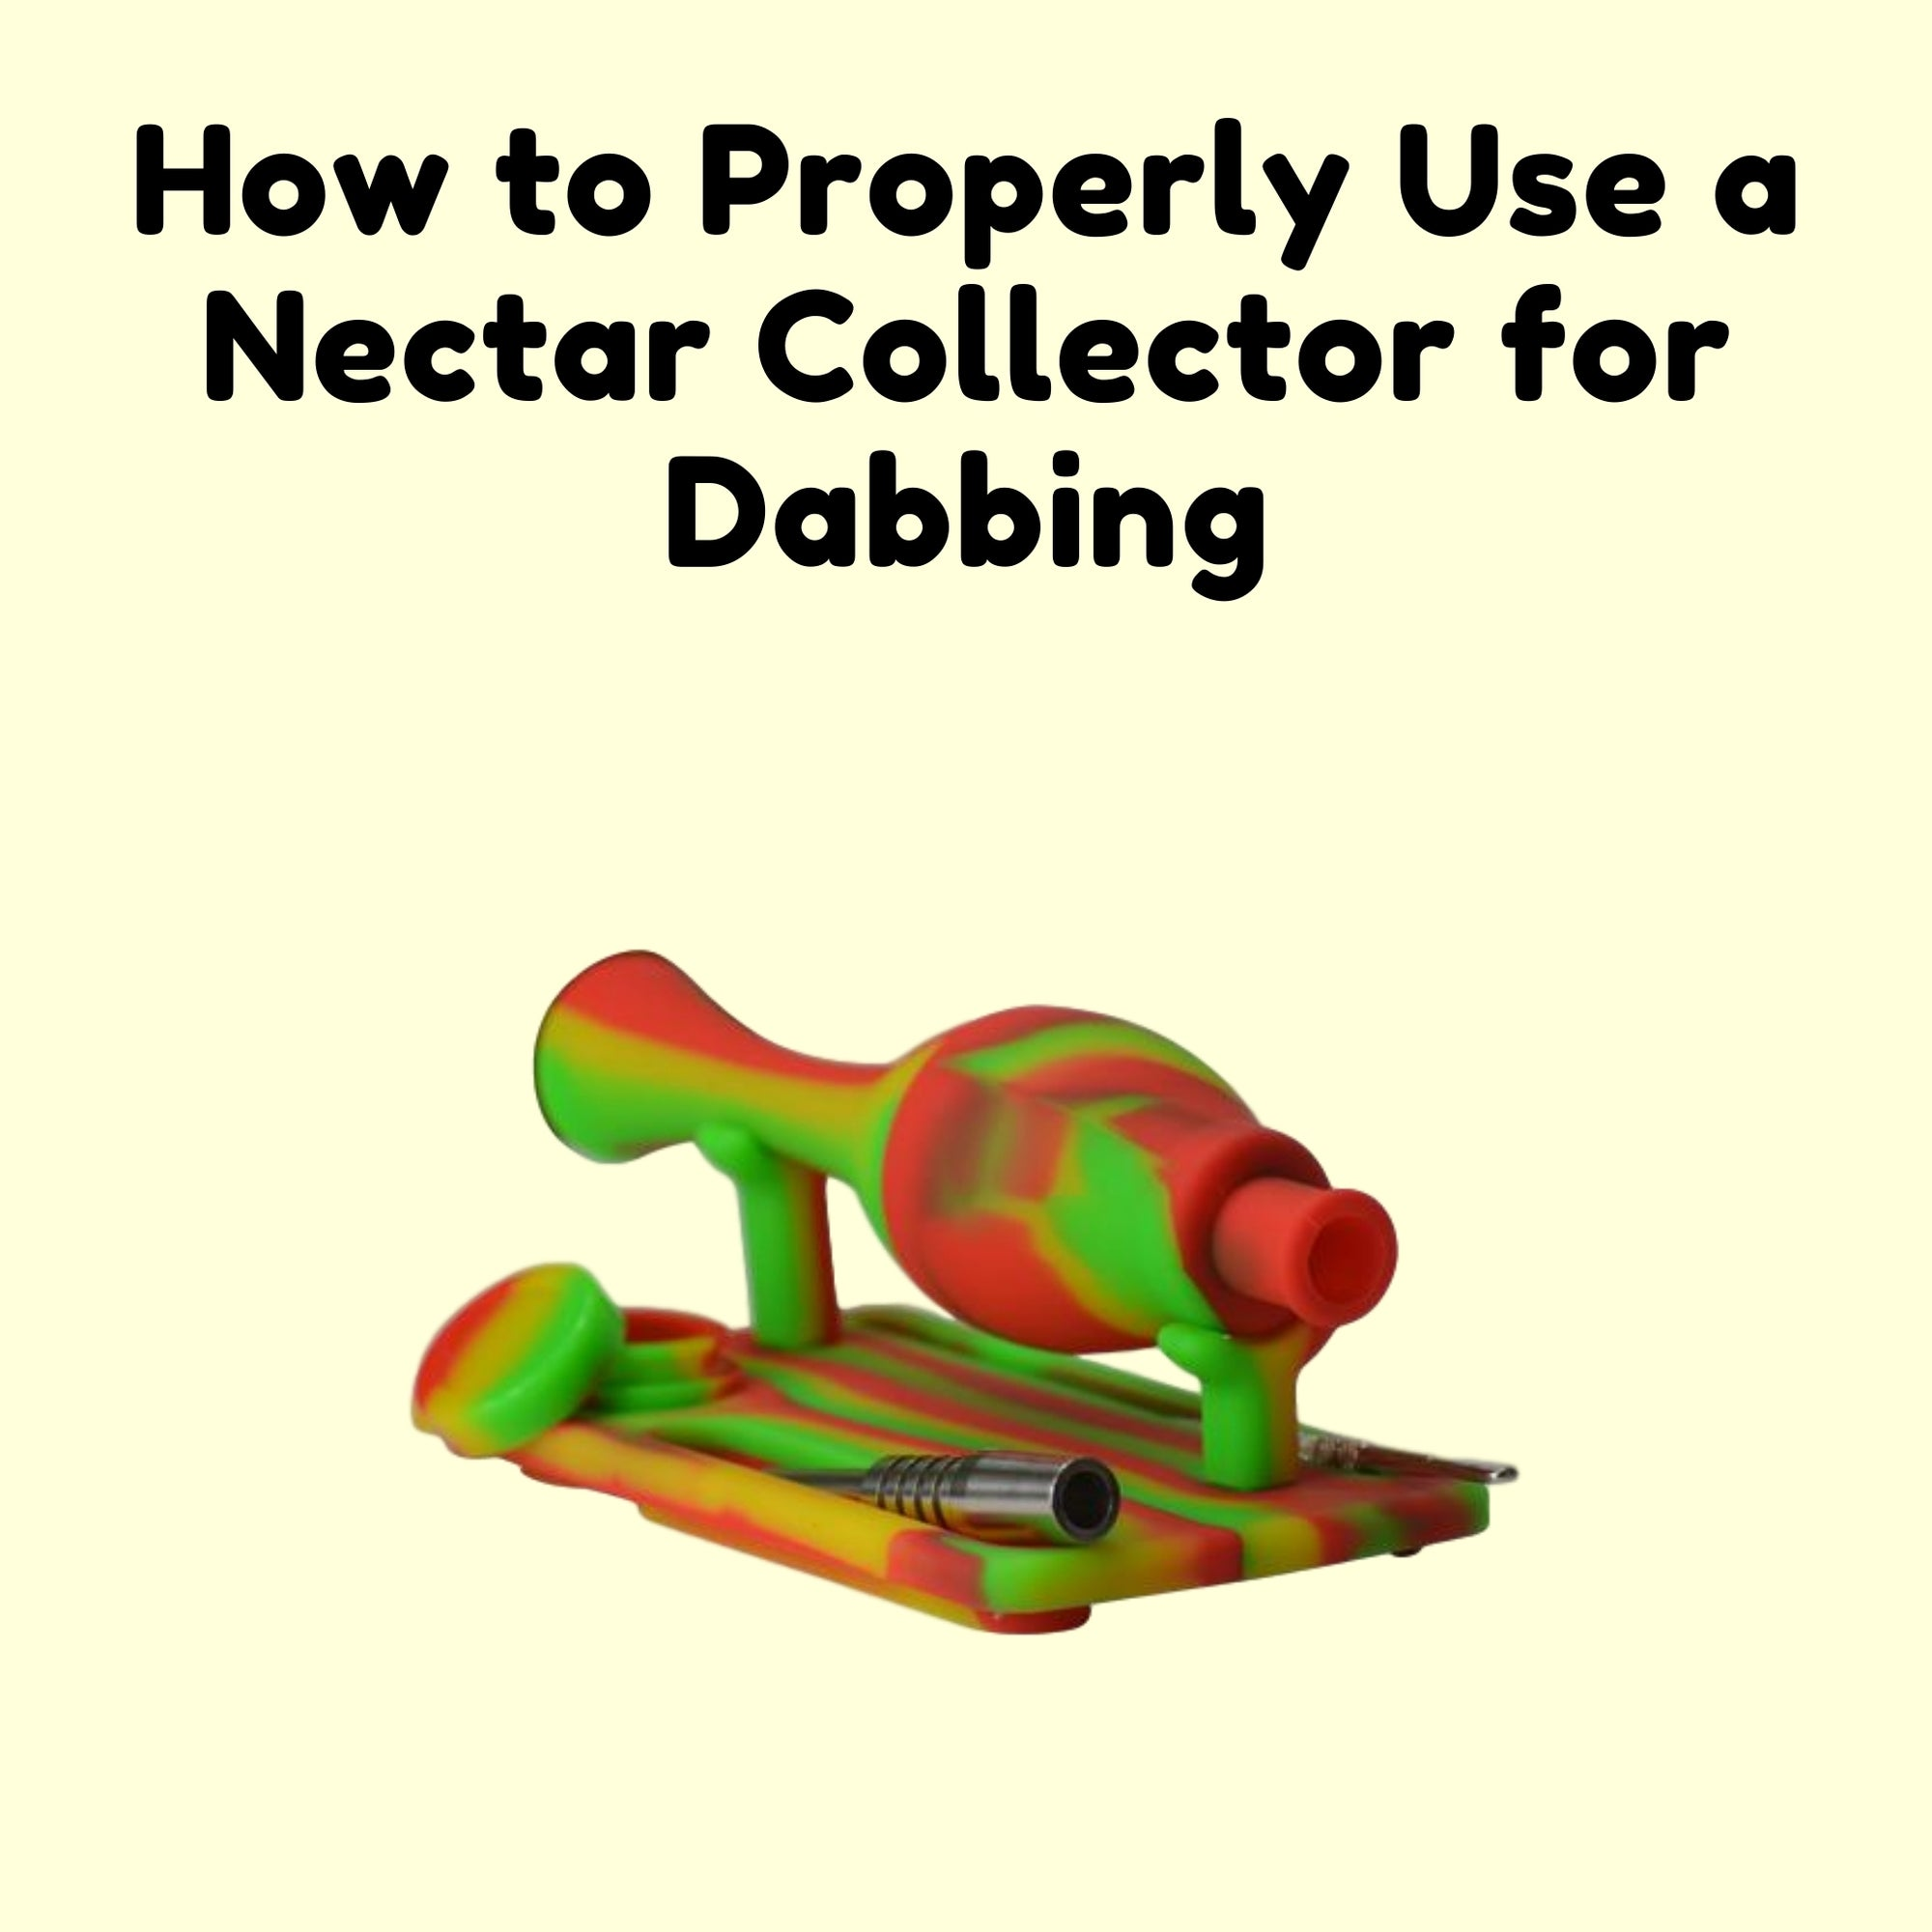 How to Properly Use a Nectar Collector for Dabbing